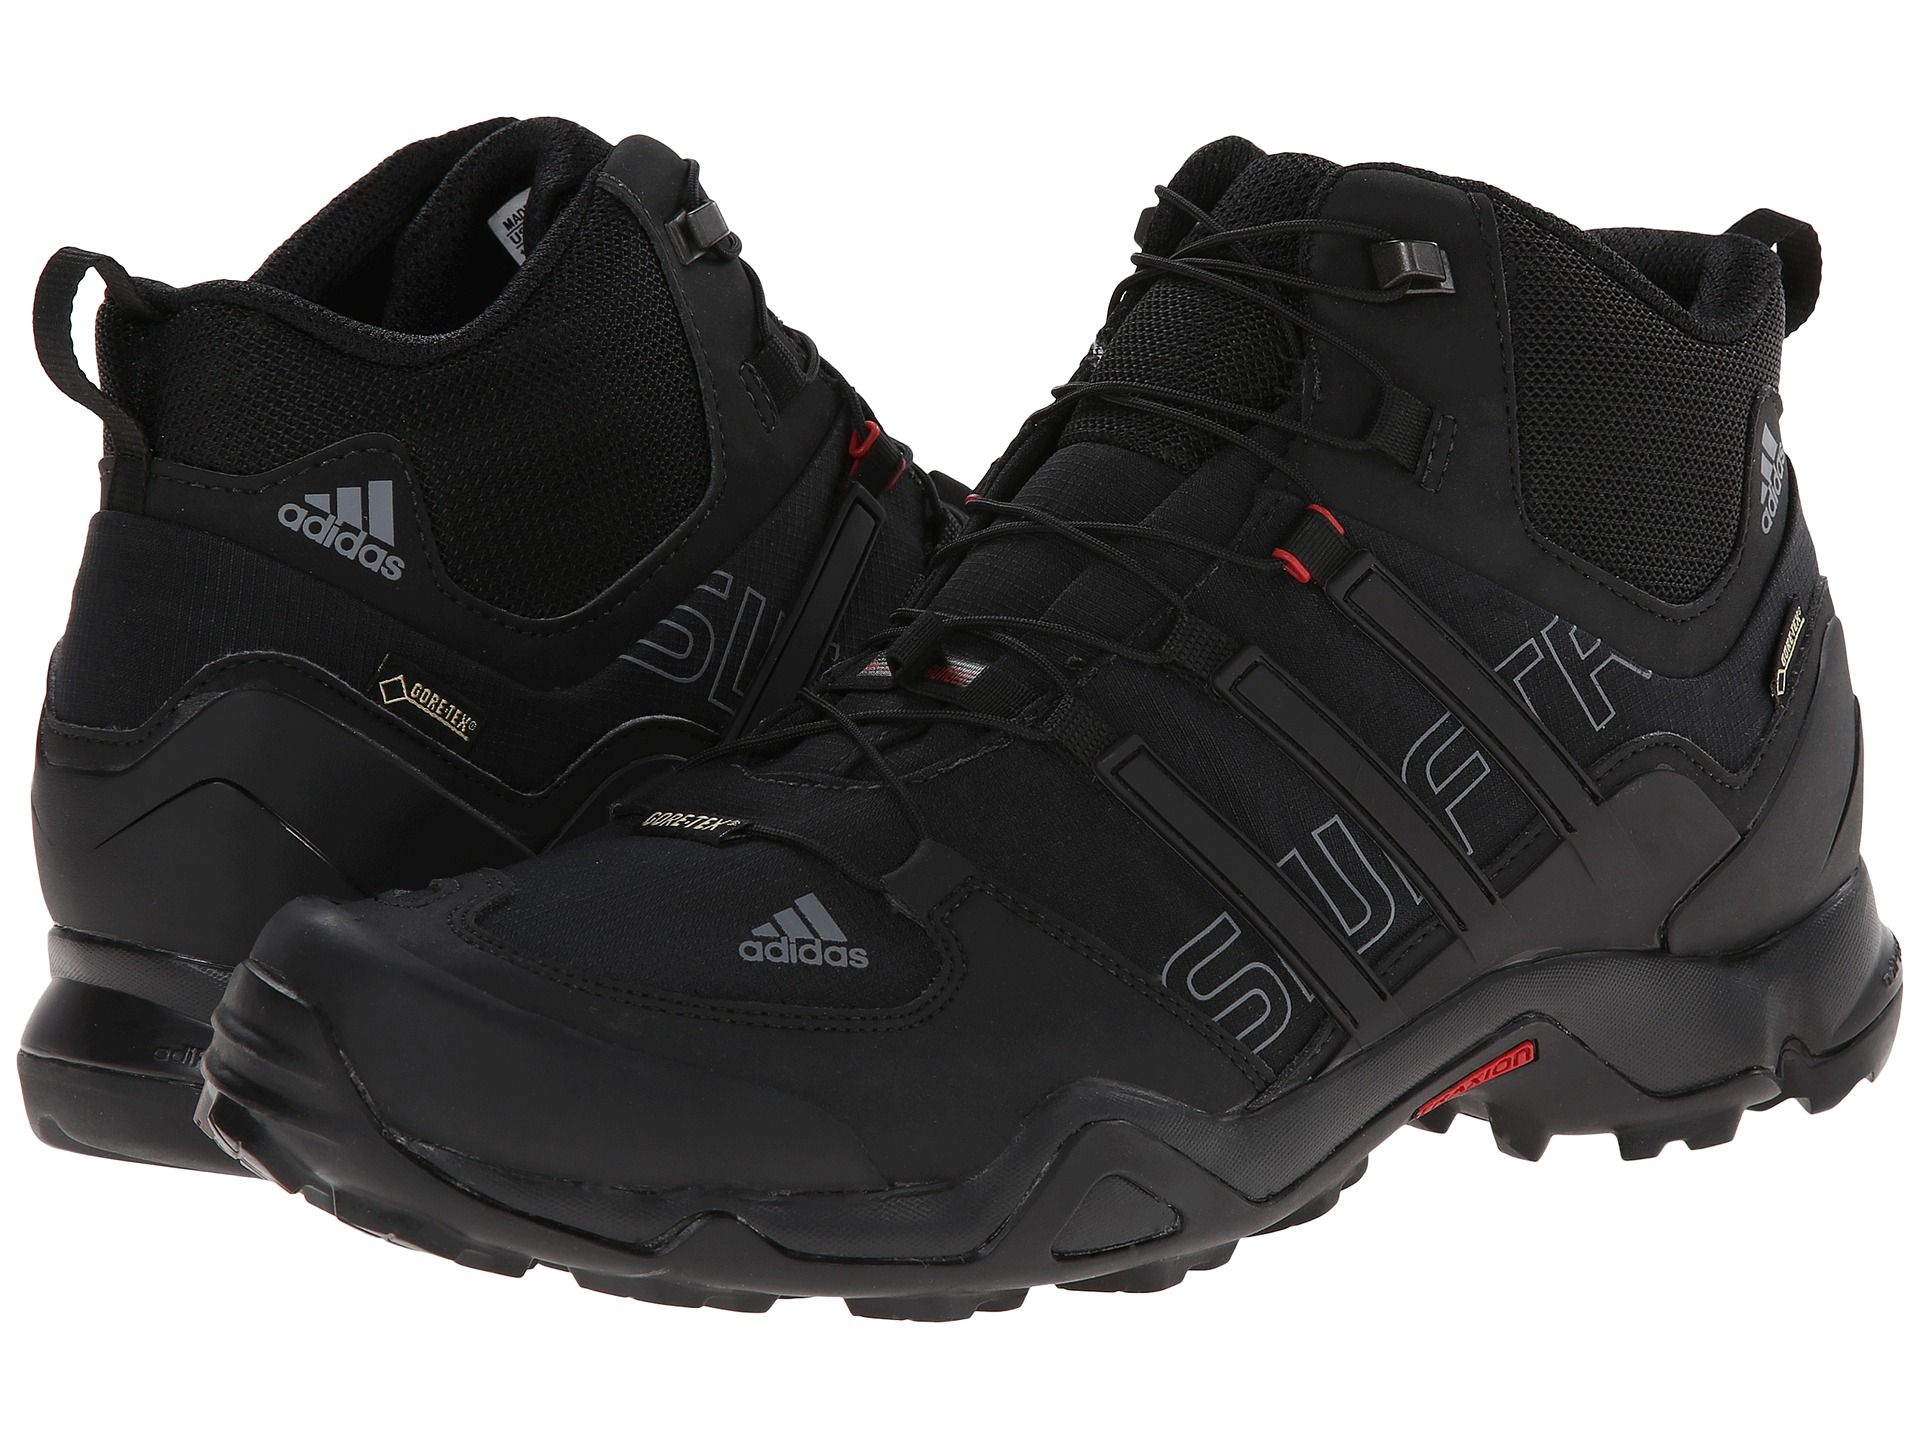 Adidas Outdoor Terrex Swift R Mid GTX® via Zappos. I